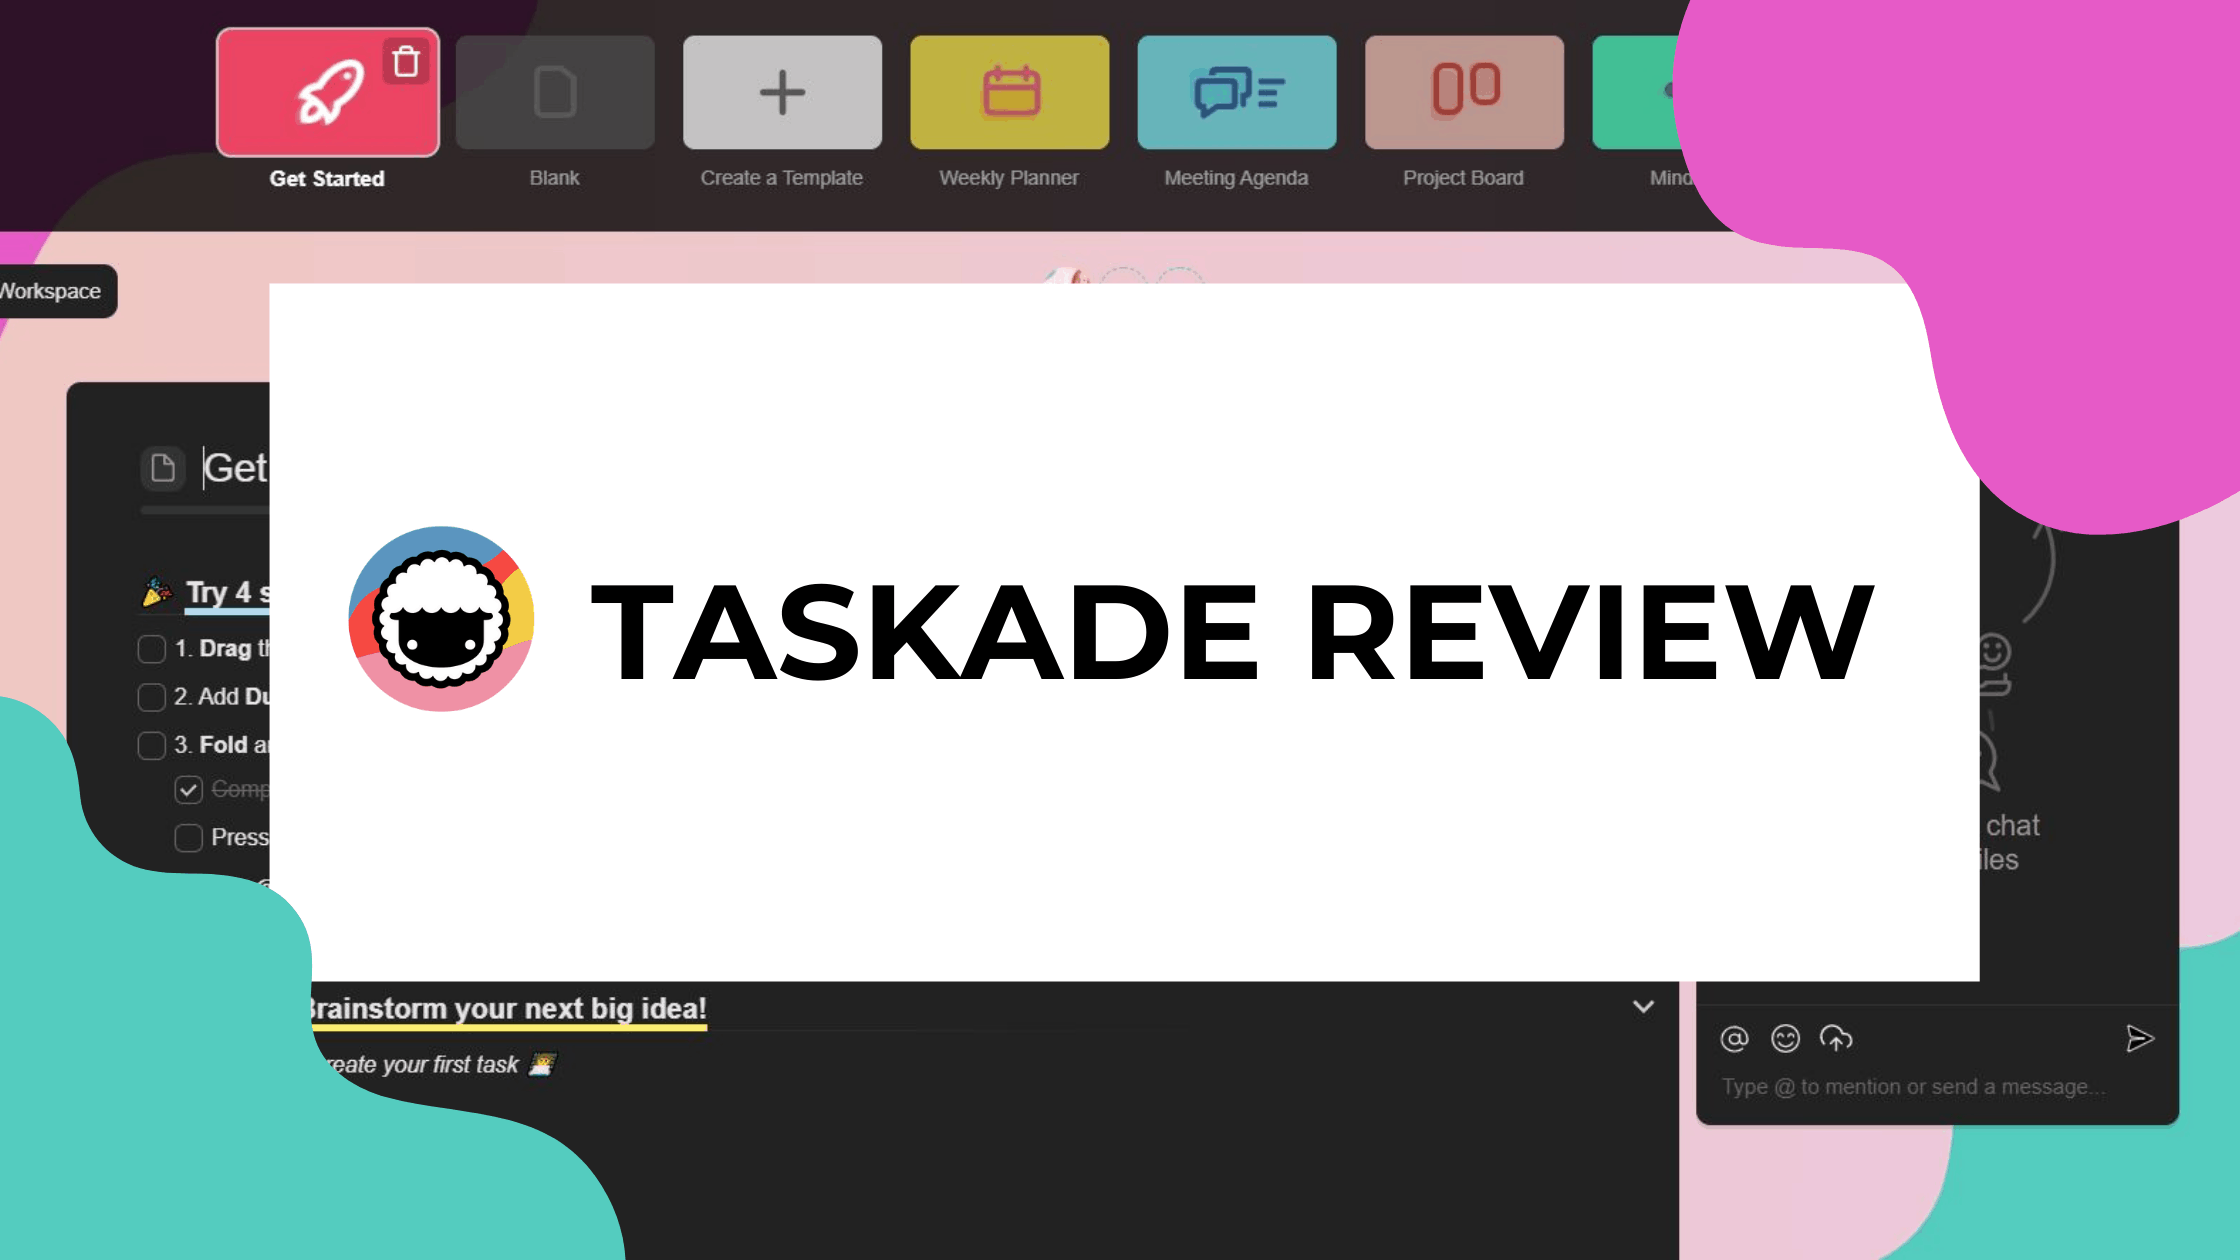 taskade review featured image